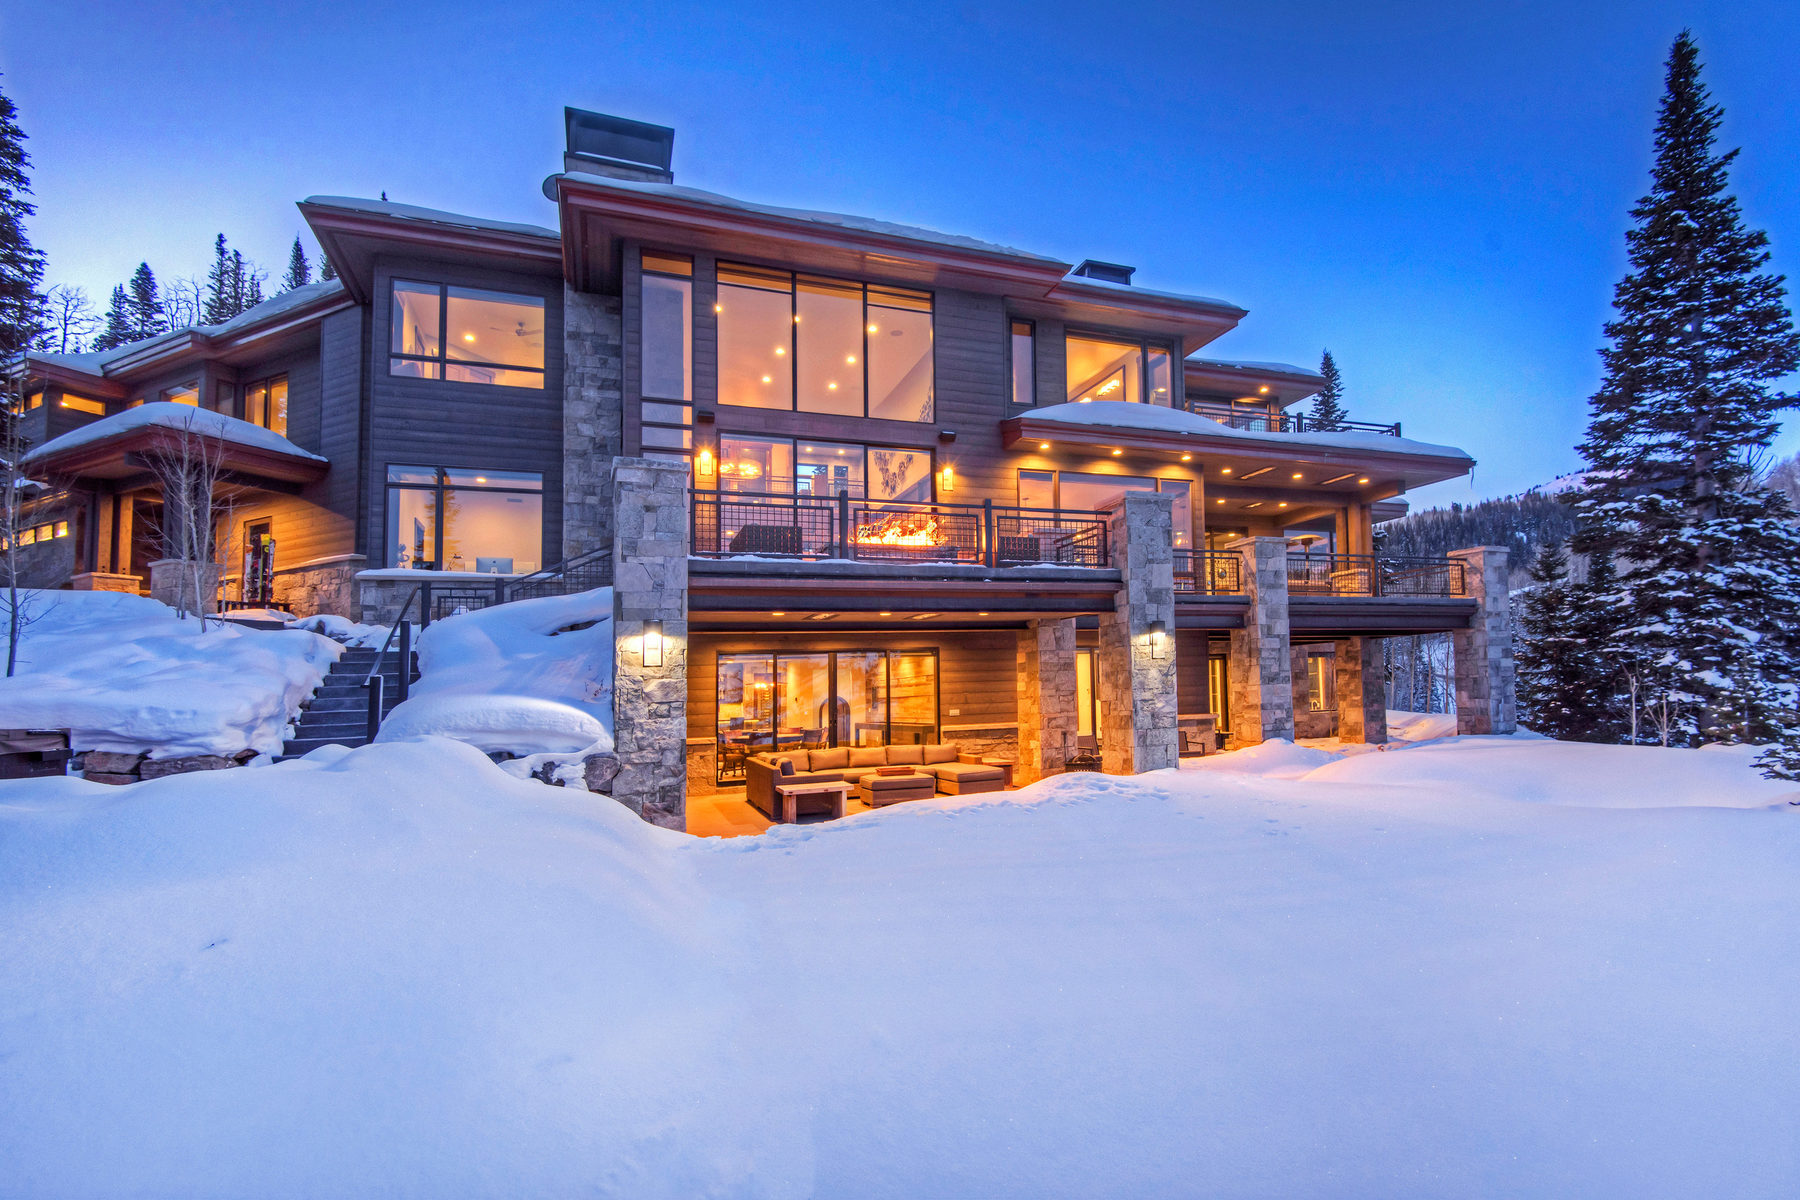 Single Family Home for Sale at State of the Art Mountain Contemporary 206 White Pine Canyon Rd Park City, Utah 84060 United States